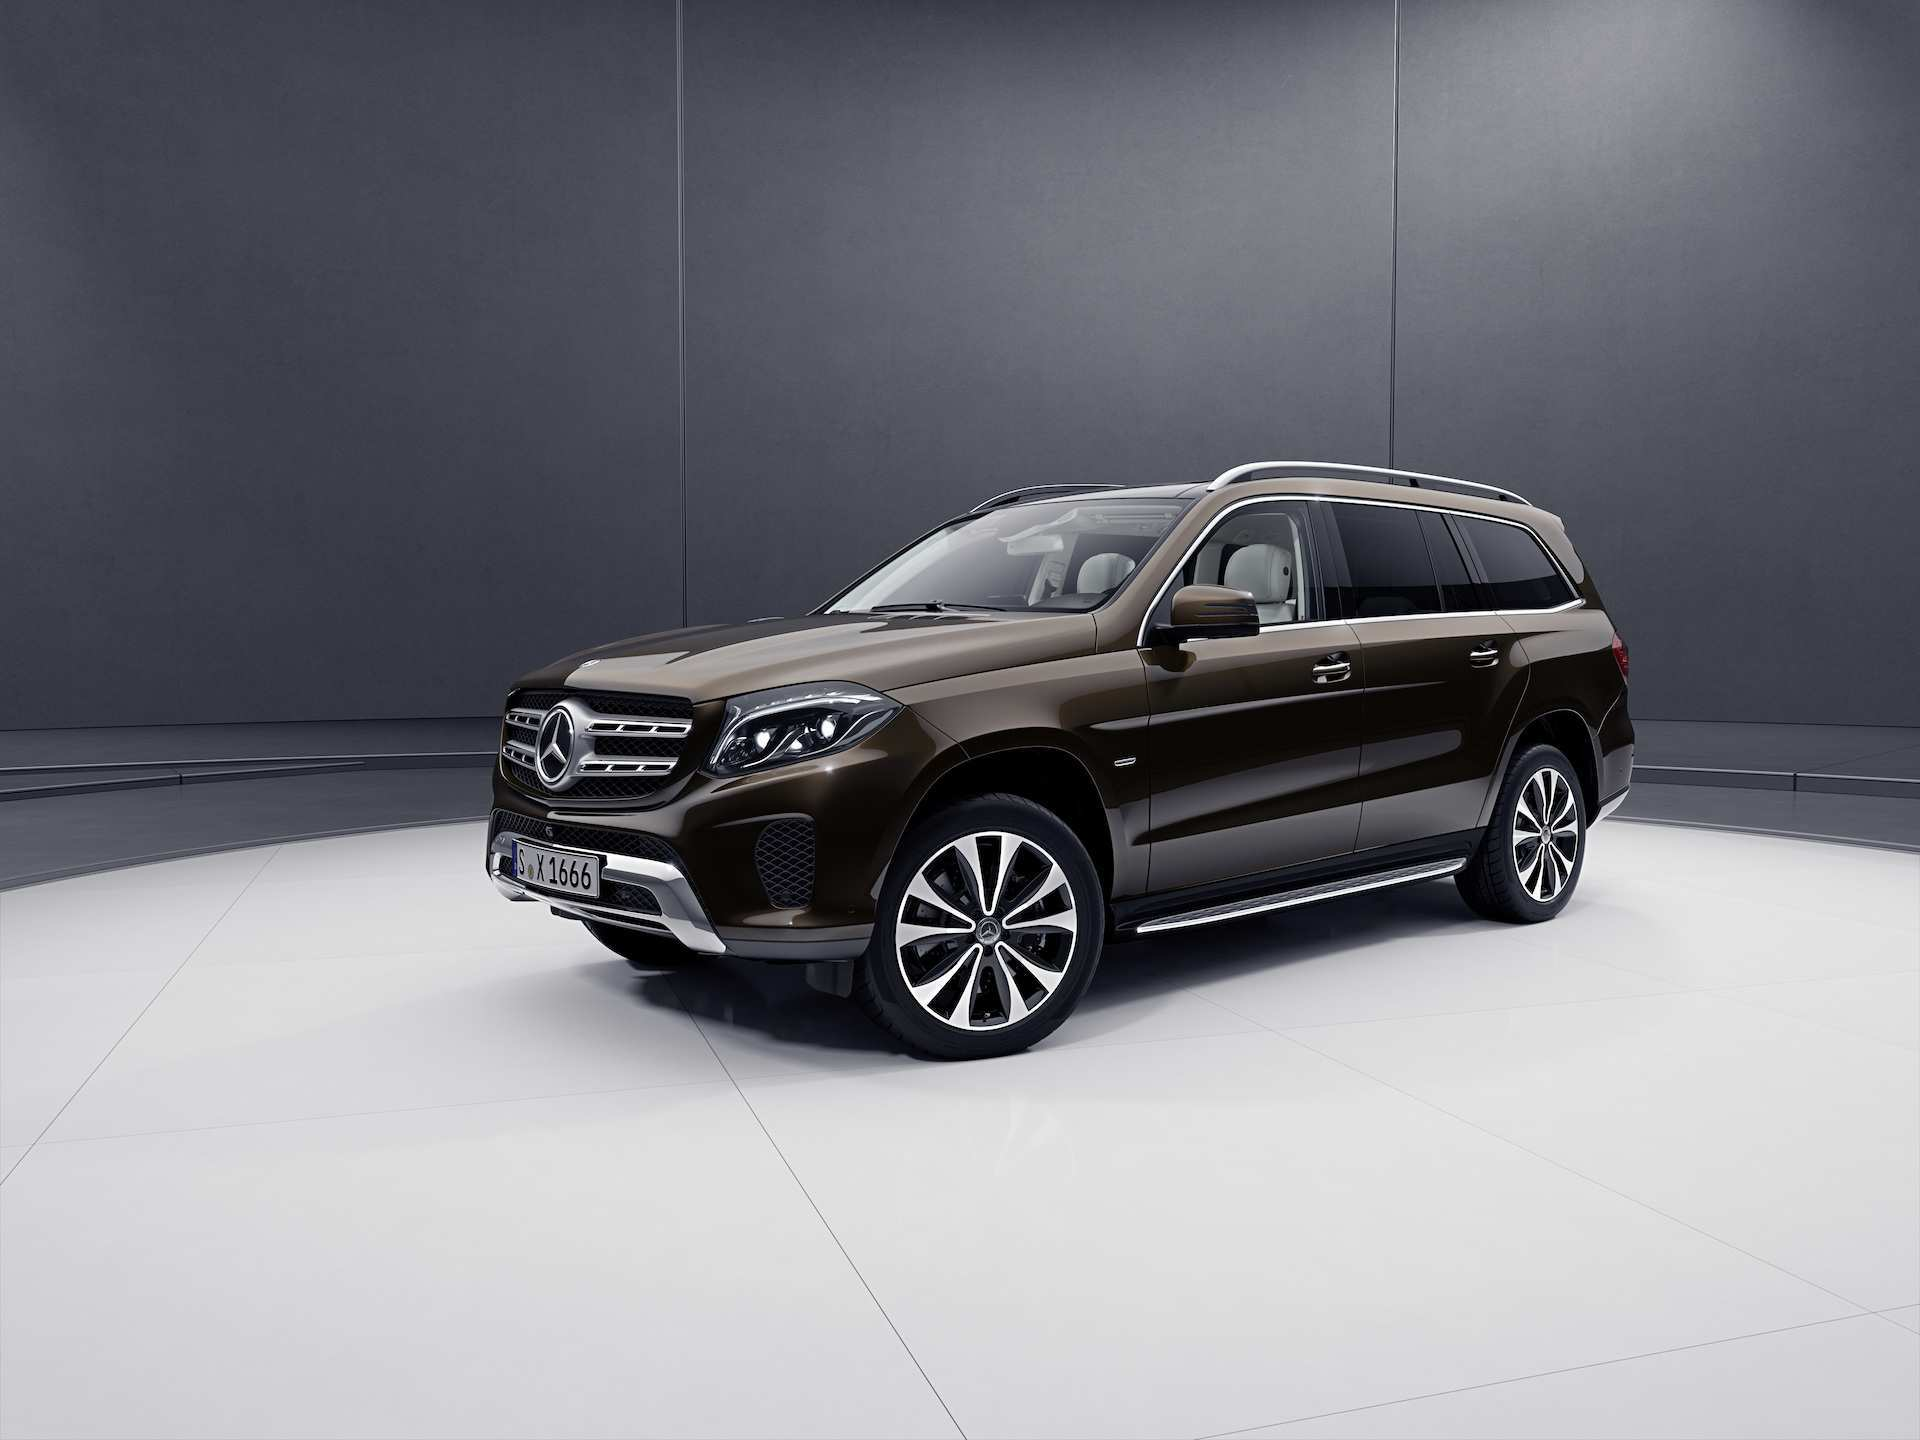 98 The Best 2019 Mercedes Gl Class Exterior And Interior